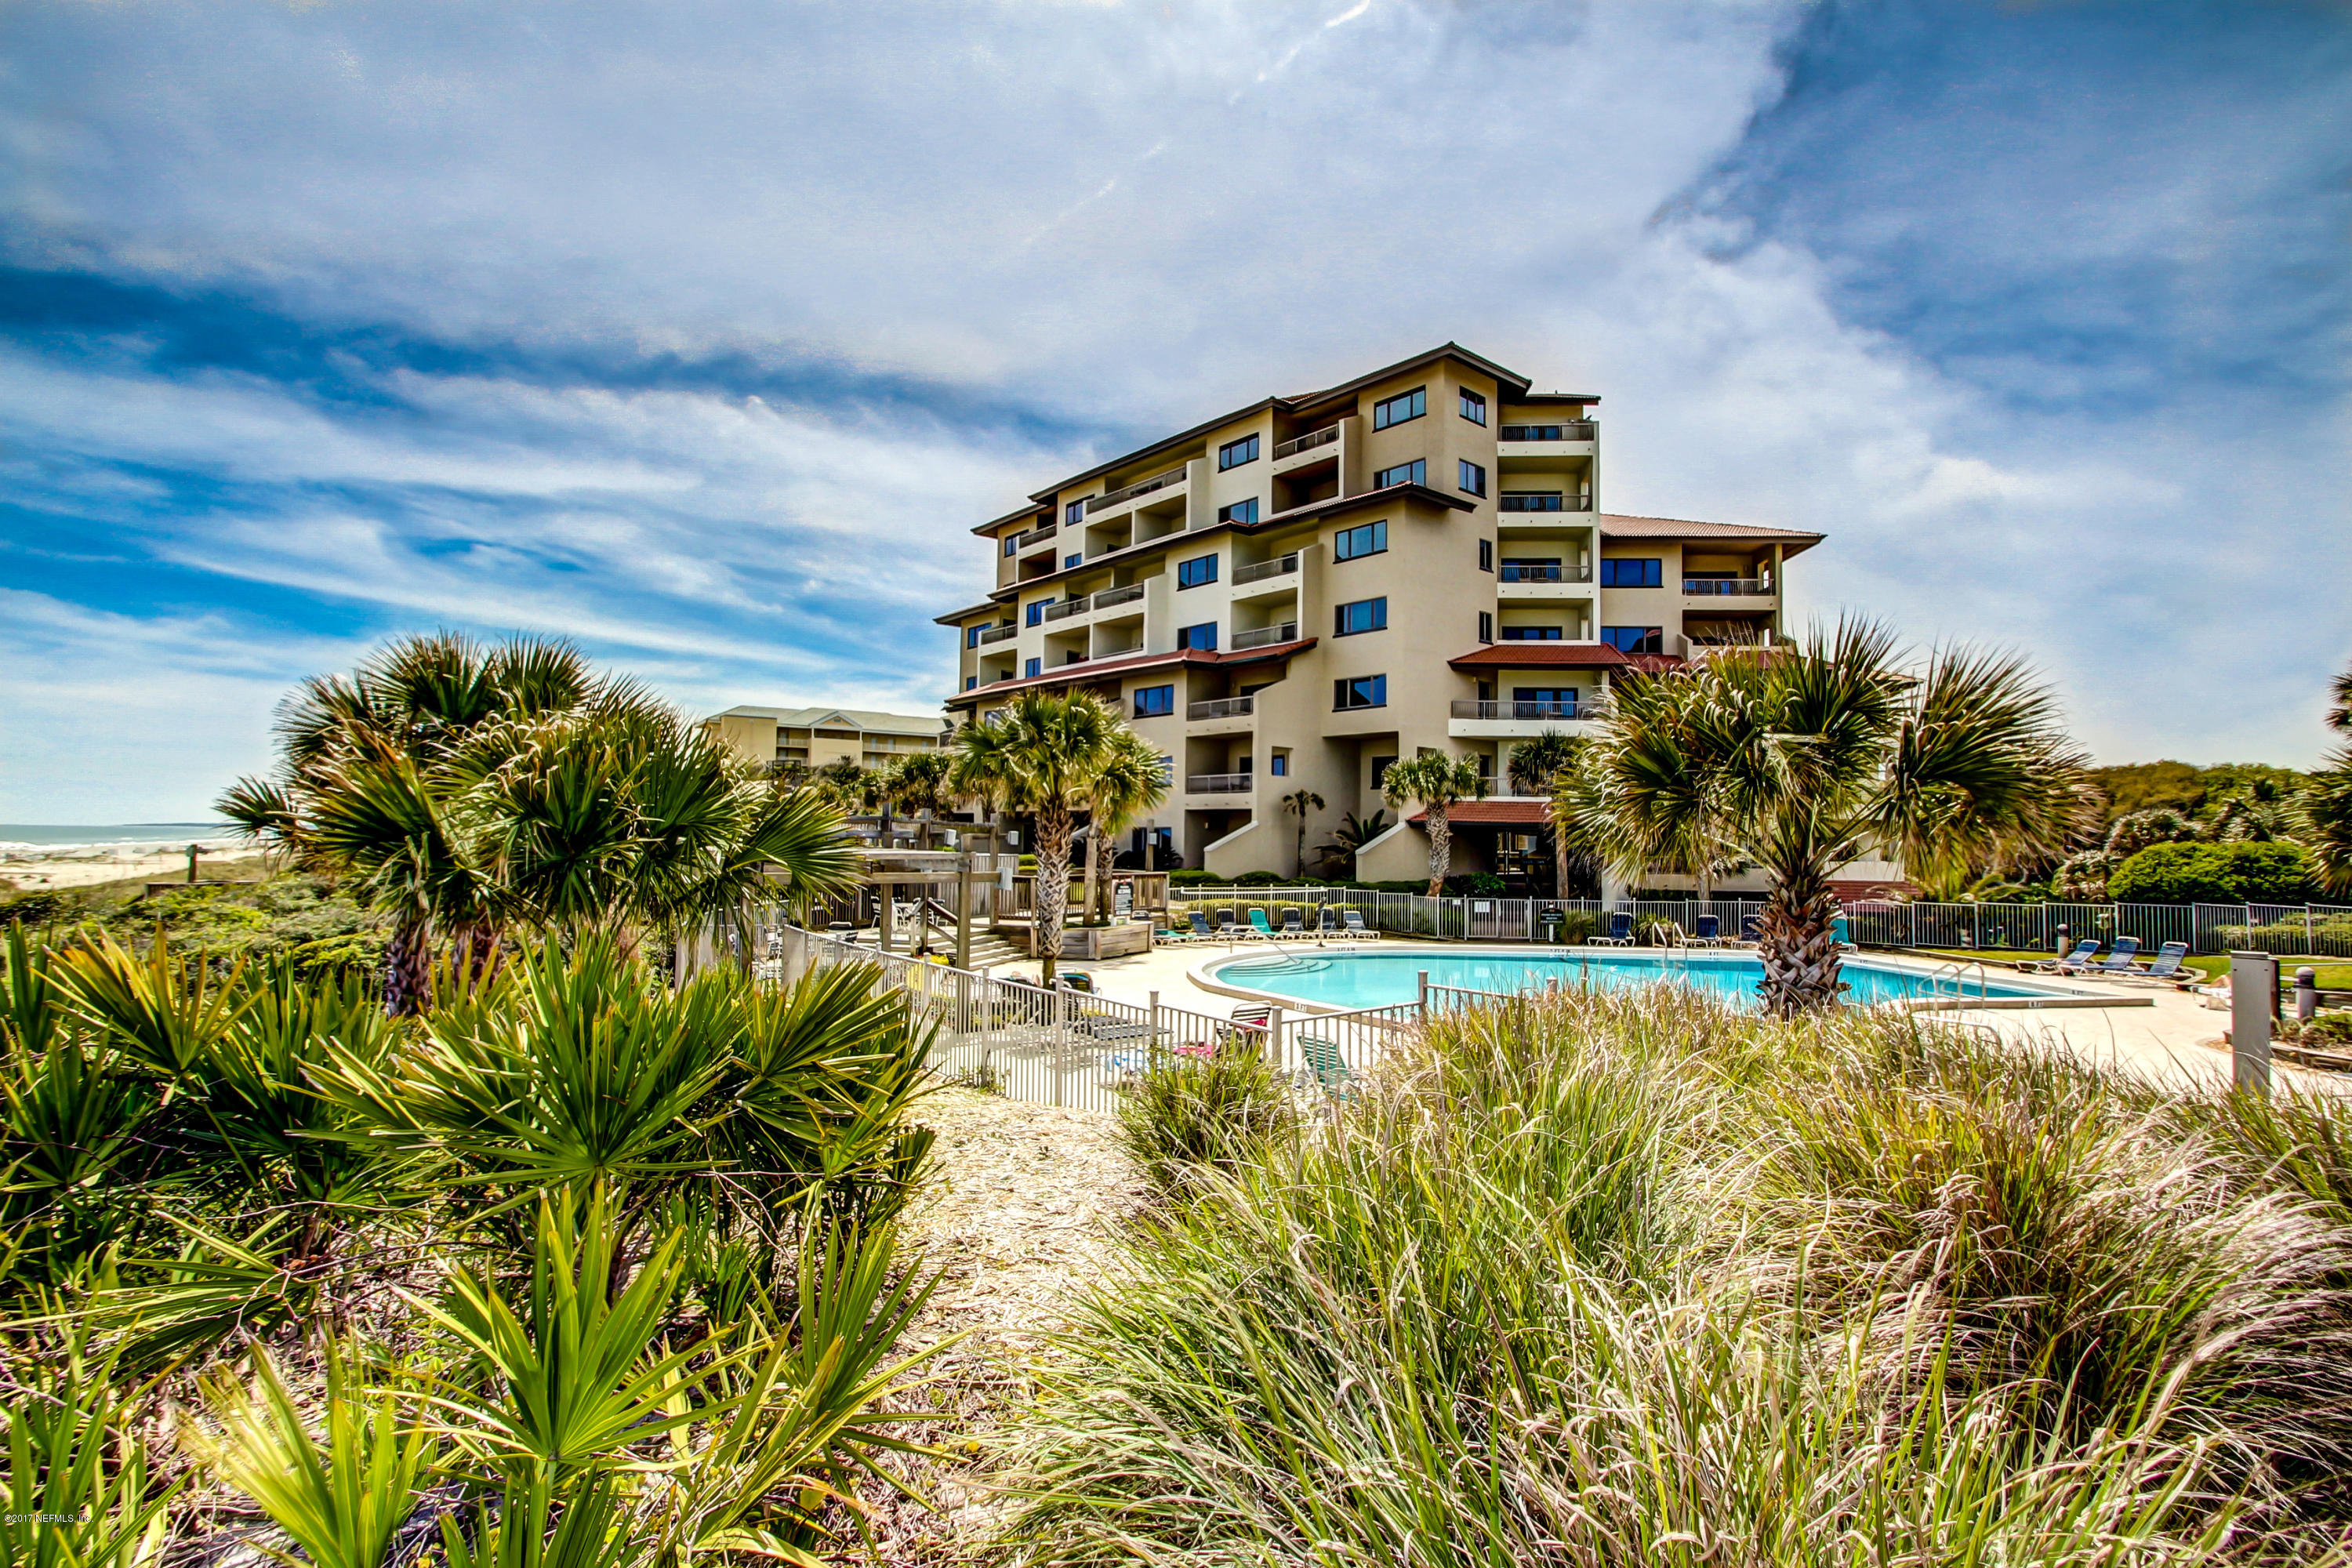 200 SANDCASTLES, AMELIA ISLAND, FLORIDA 32034, 2 Bedrooms Bedrooms, ,2 BathroomsBathrooms,Residential - condos/townhomes,For sale,SANDCASTLES,898691